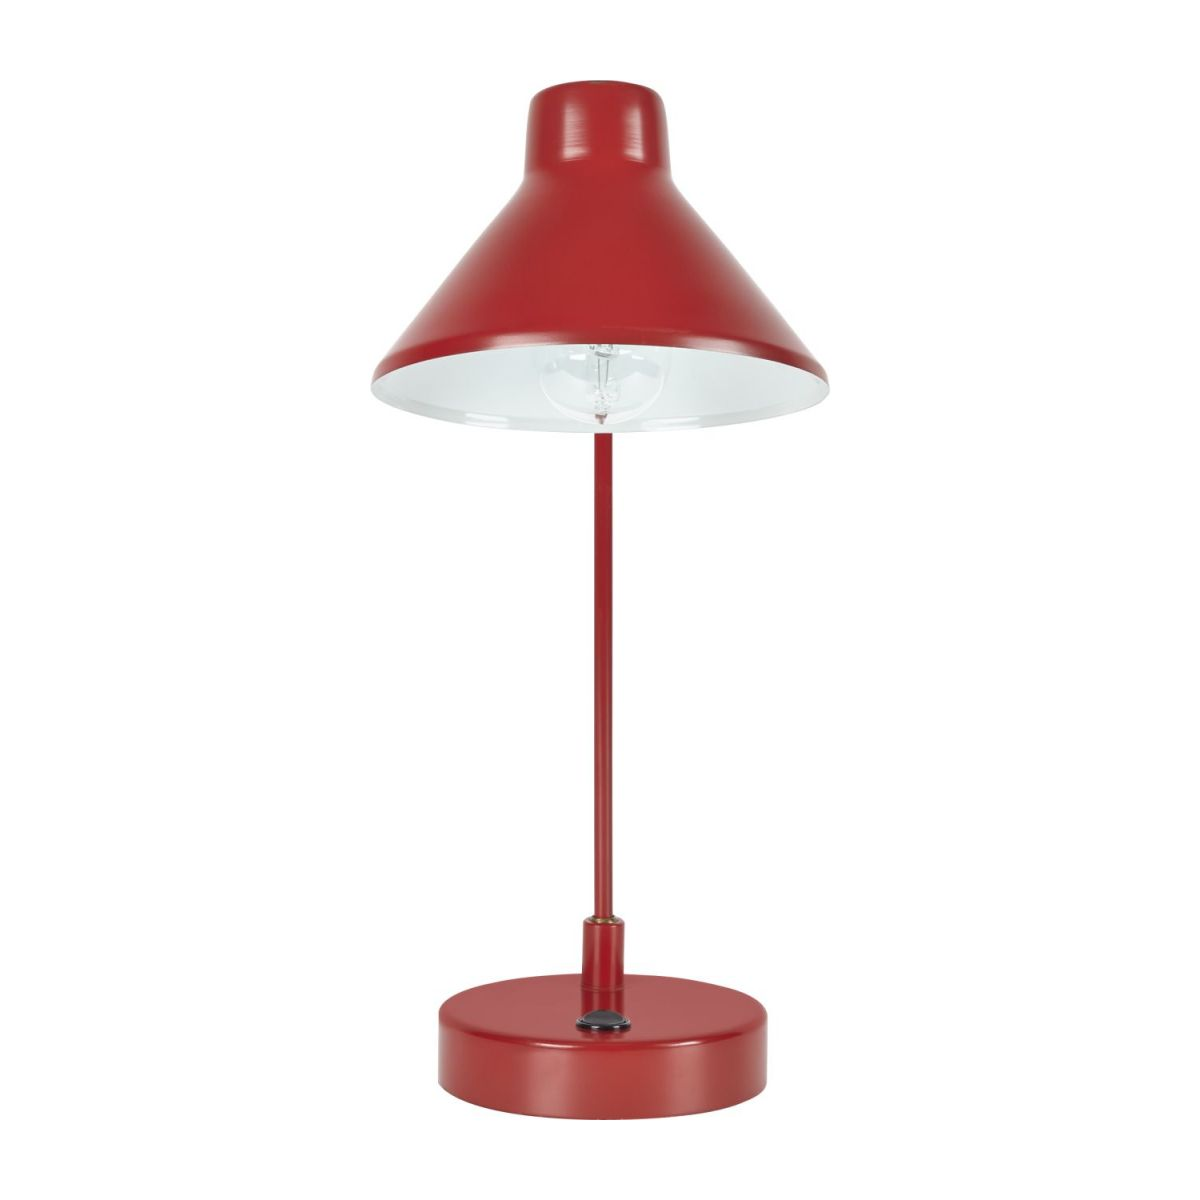 Steel desk lamp, red n°2